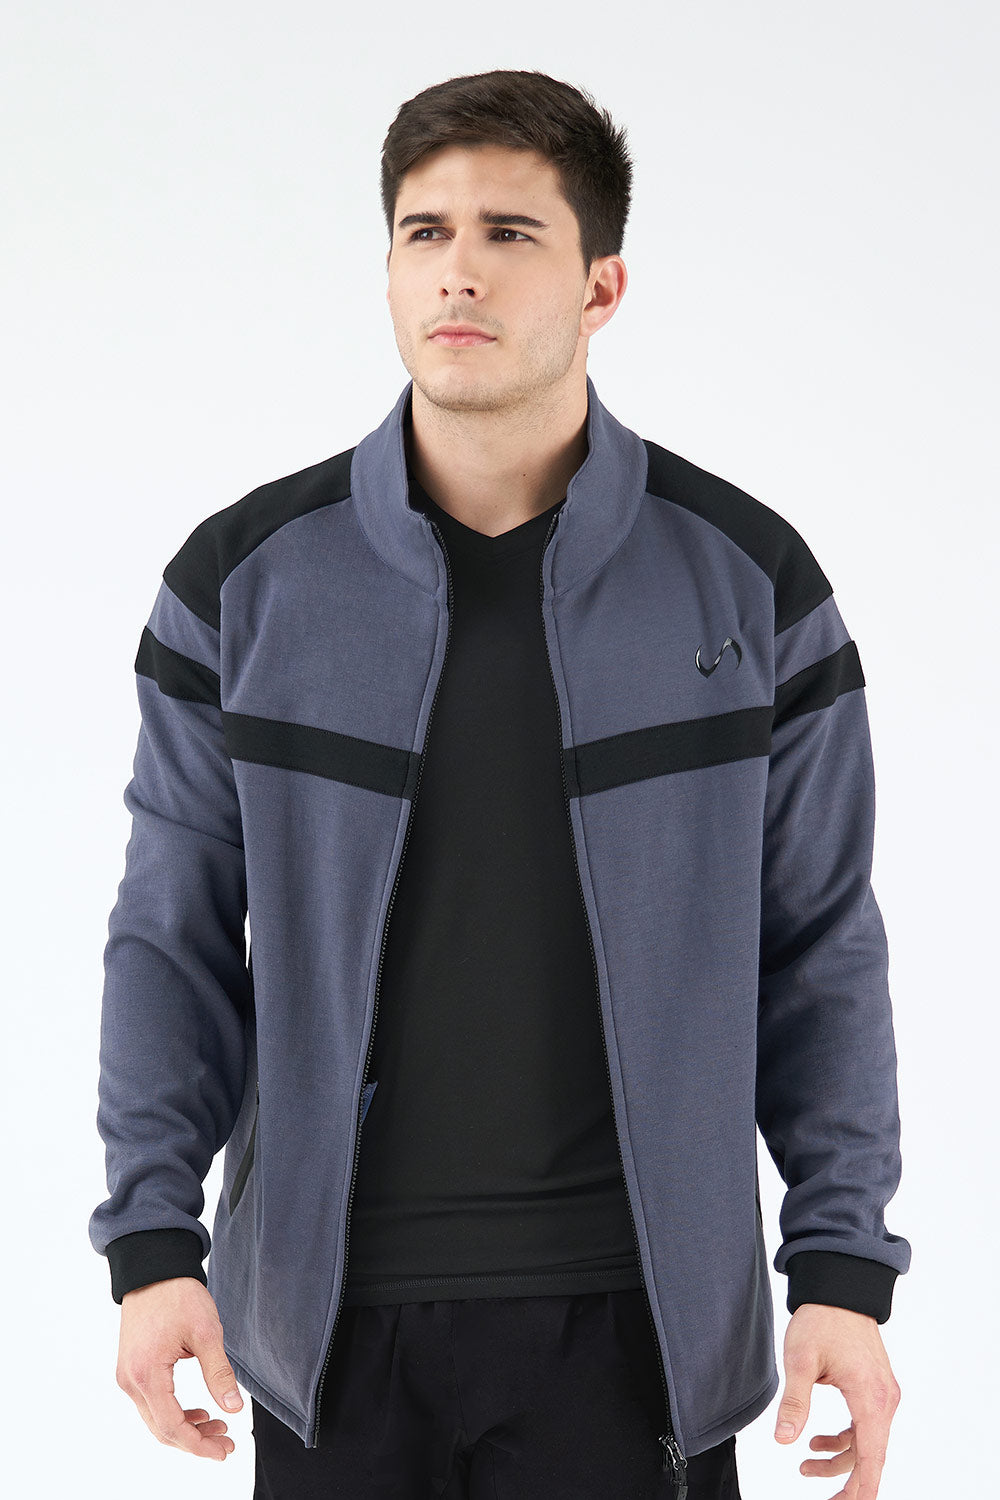 TLF Techne Athletic Jacket - Deep Navy Heather - TLF Apparel | Take Life Further